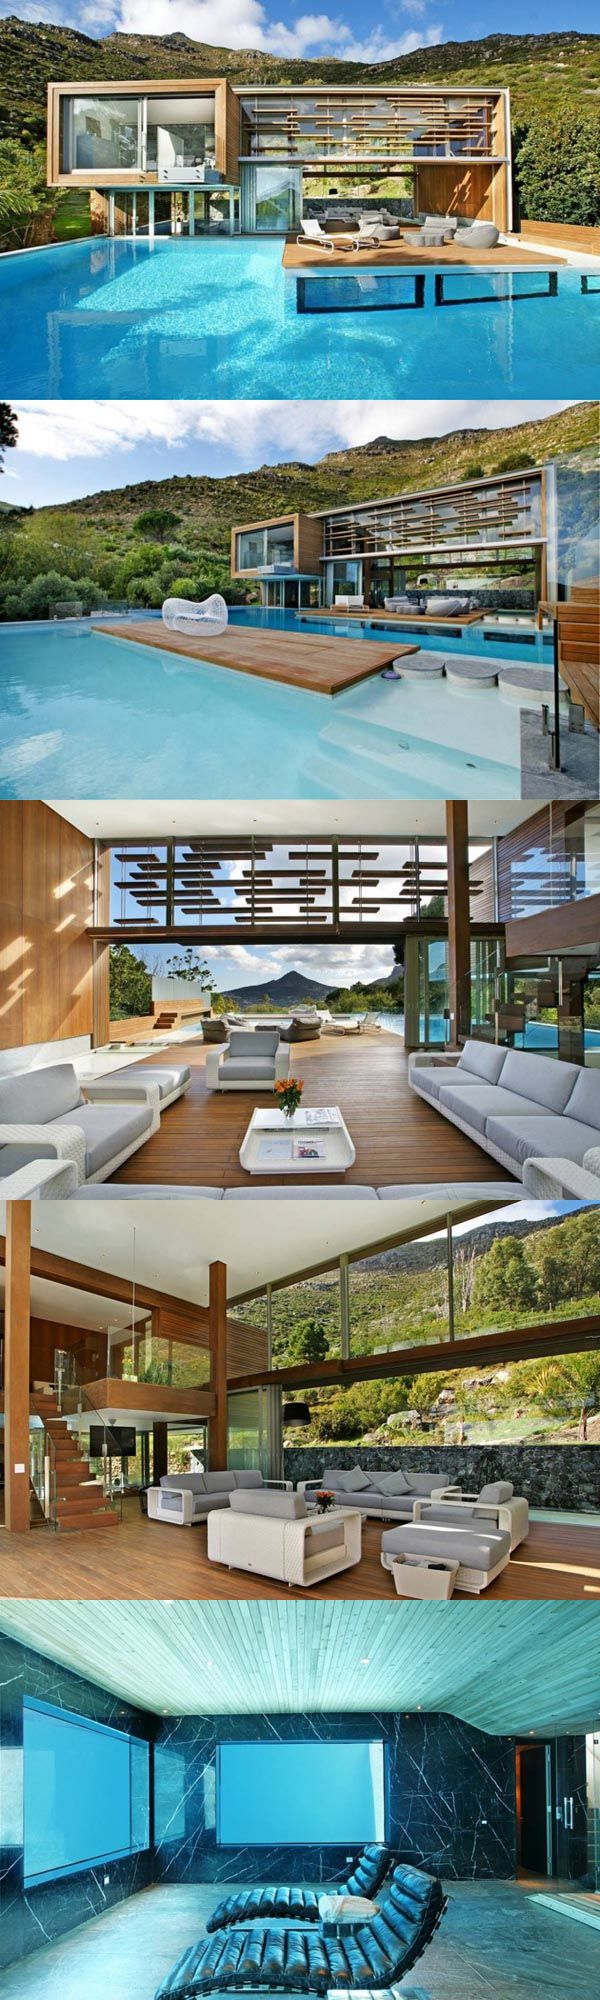 ☮ Modern Architecture Luxurious Architecture. The architects of Metropolis Design created the relaxing Spa House located in Cape Town, South Africa. from www.archdaily.com...